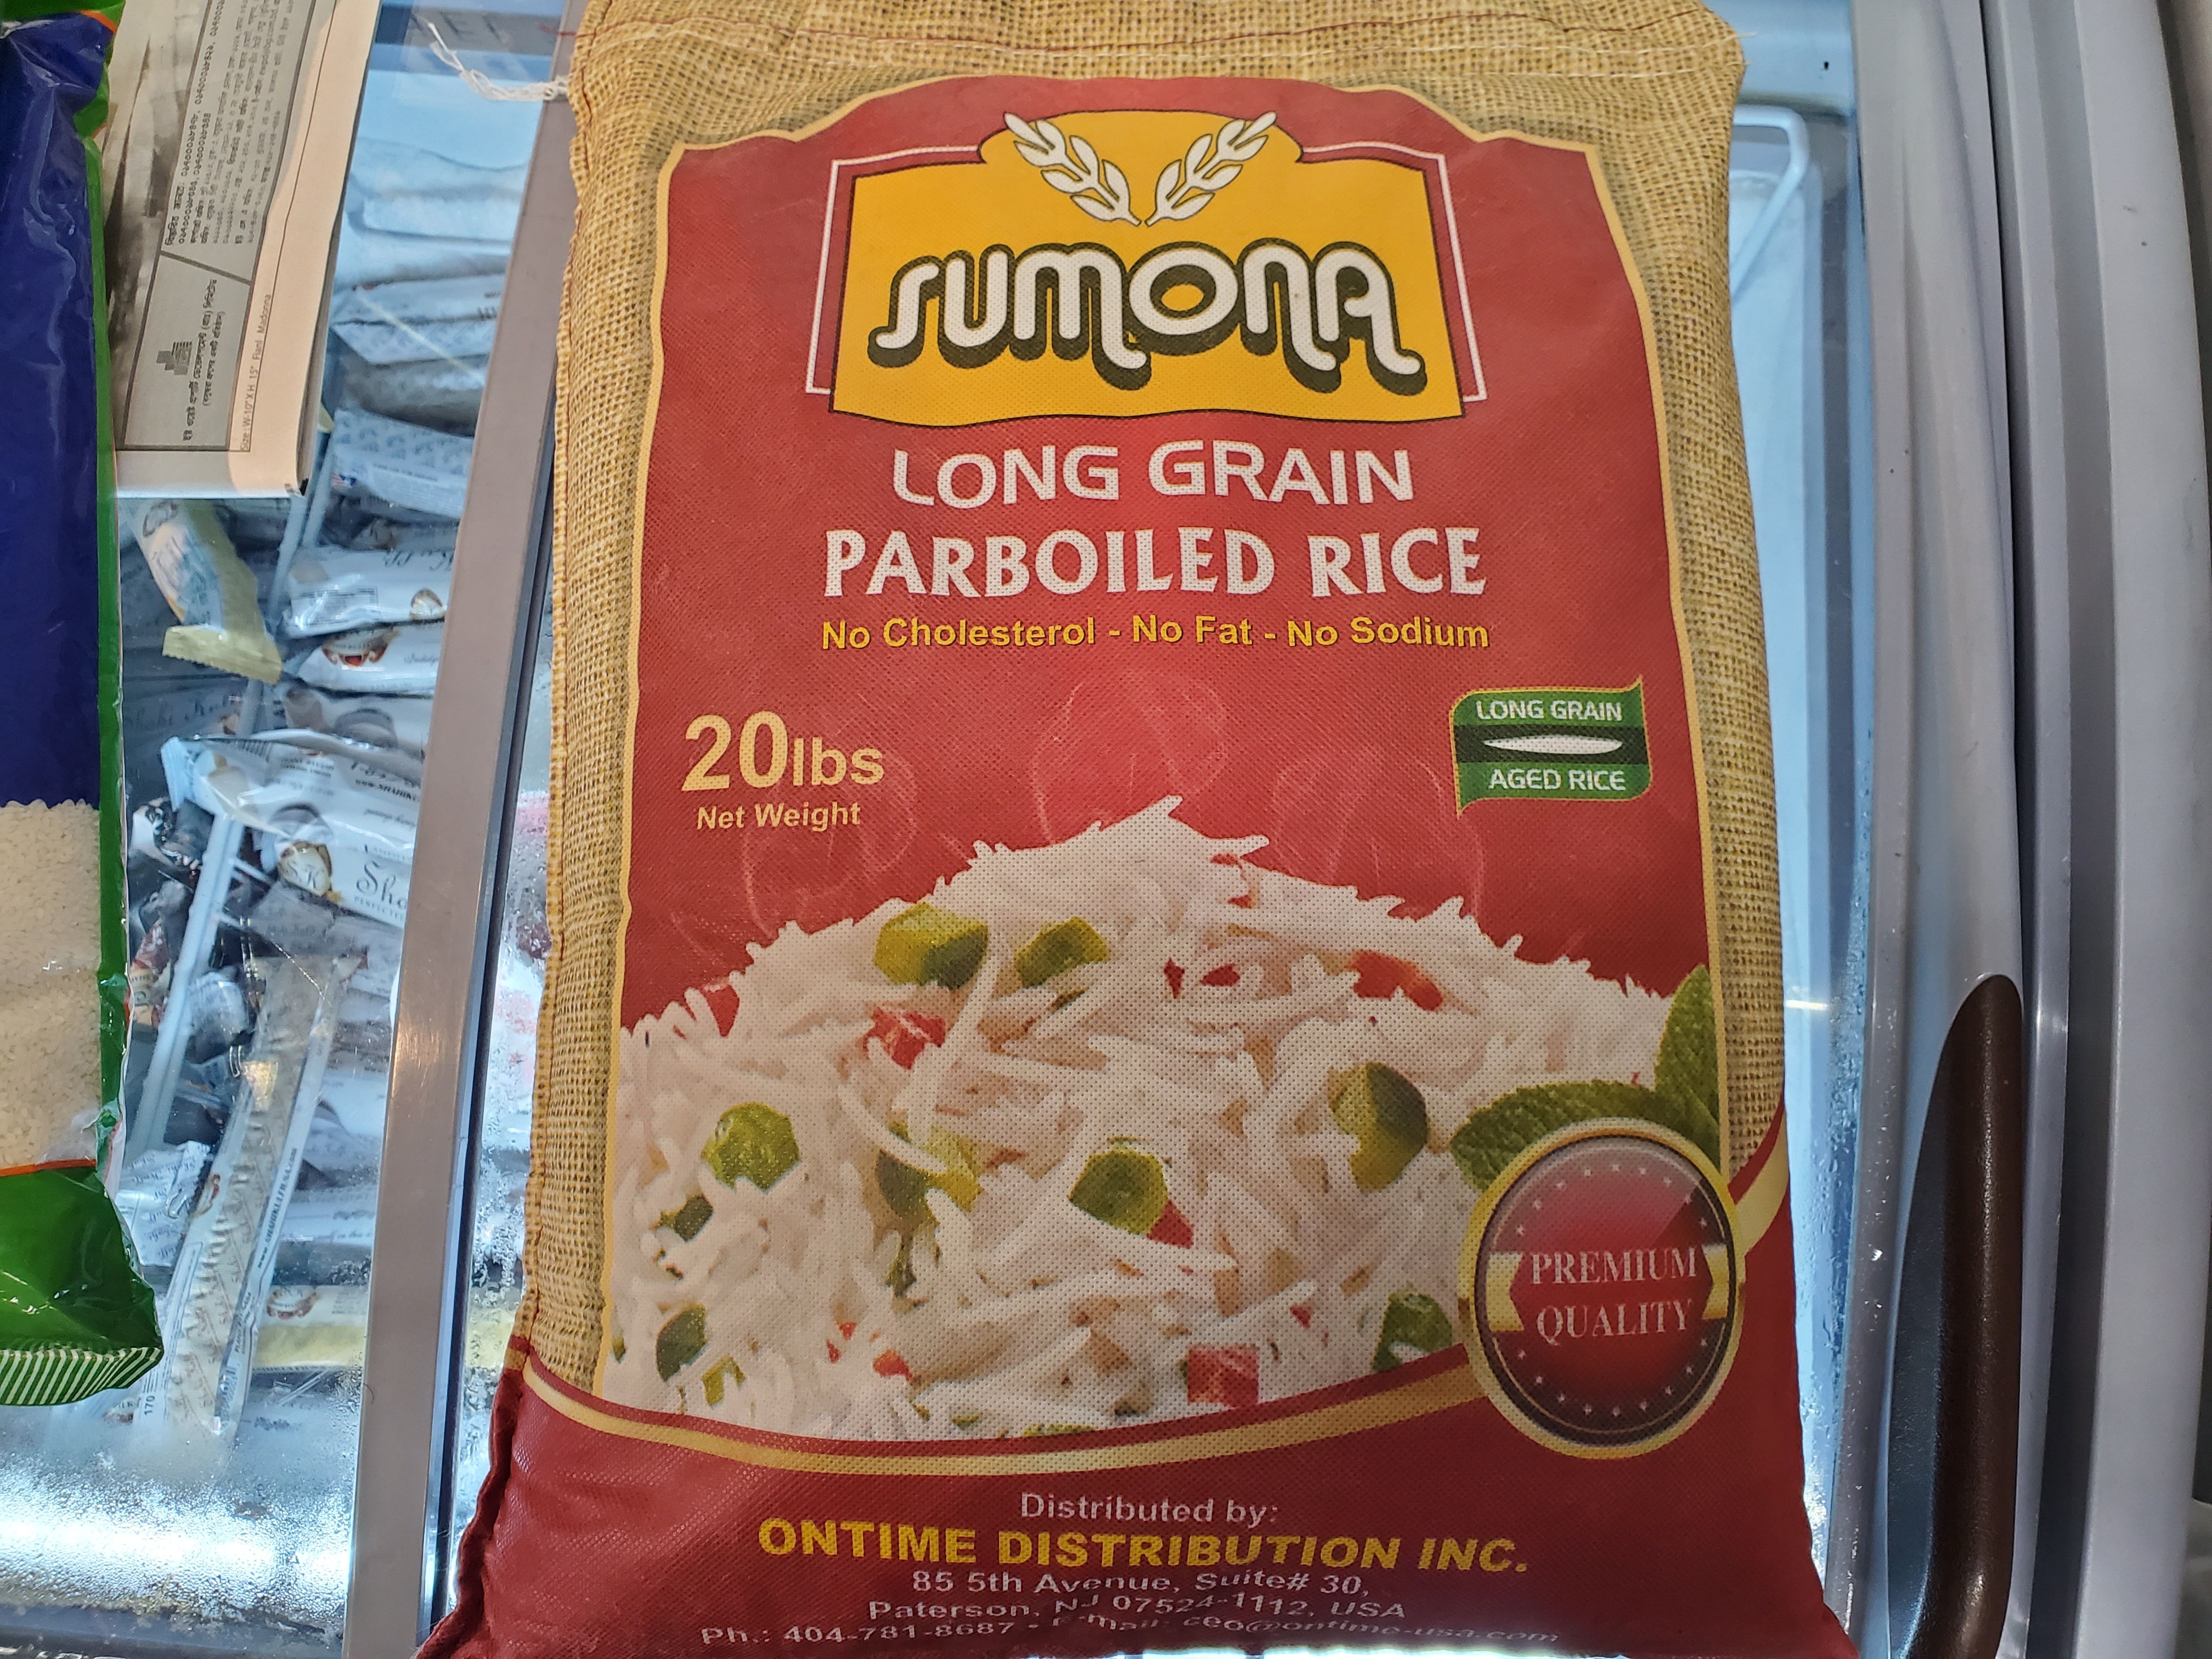 SUMONA LONG GRAIN PARBOILED RICE 20lb